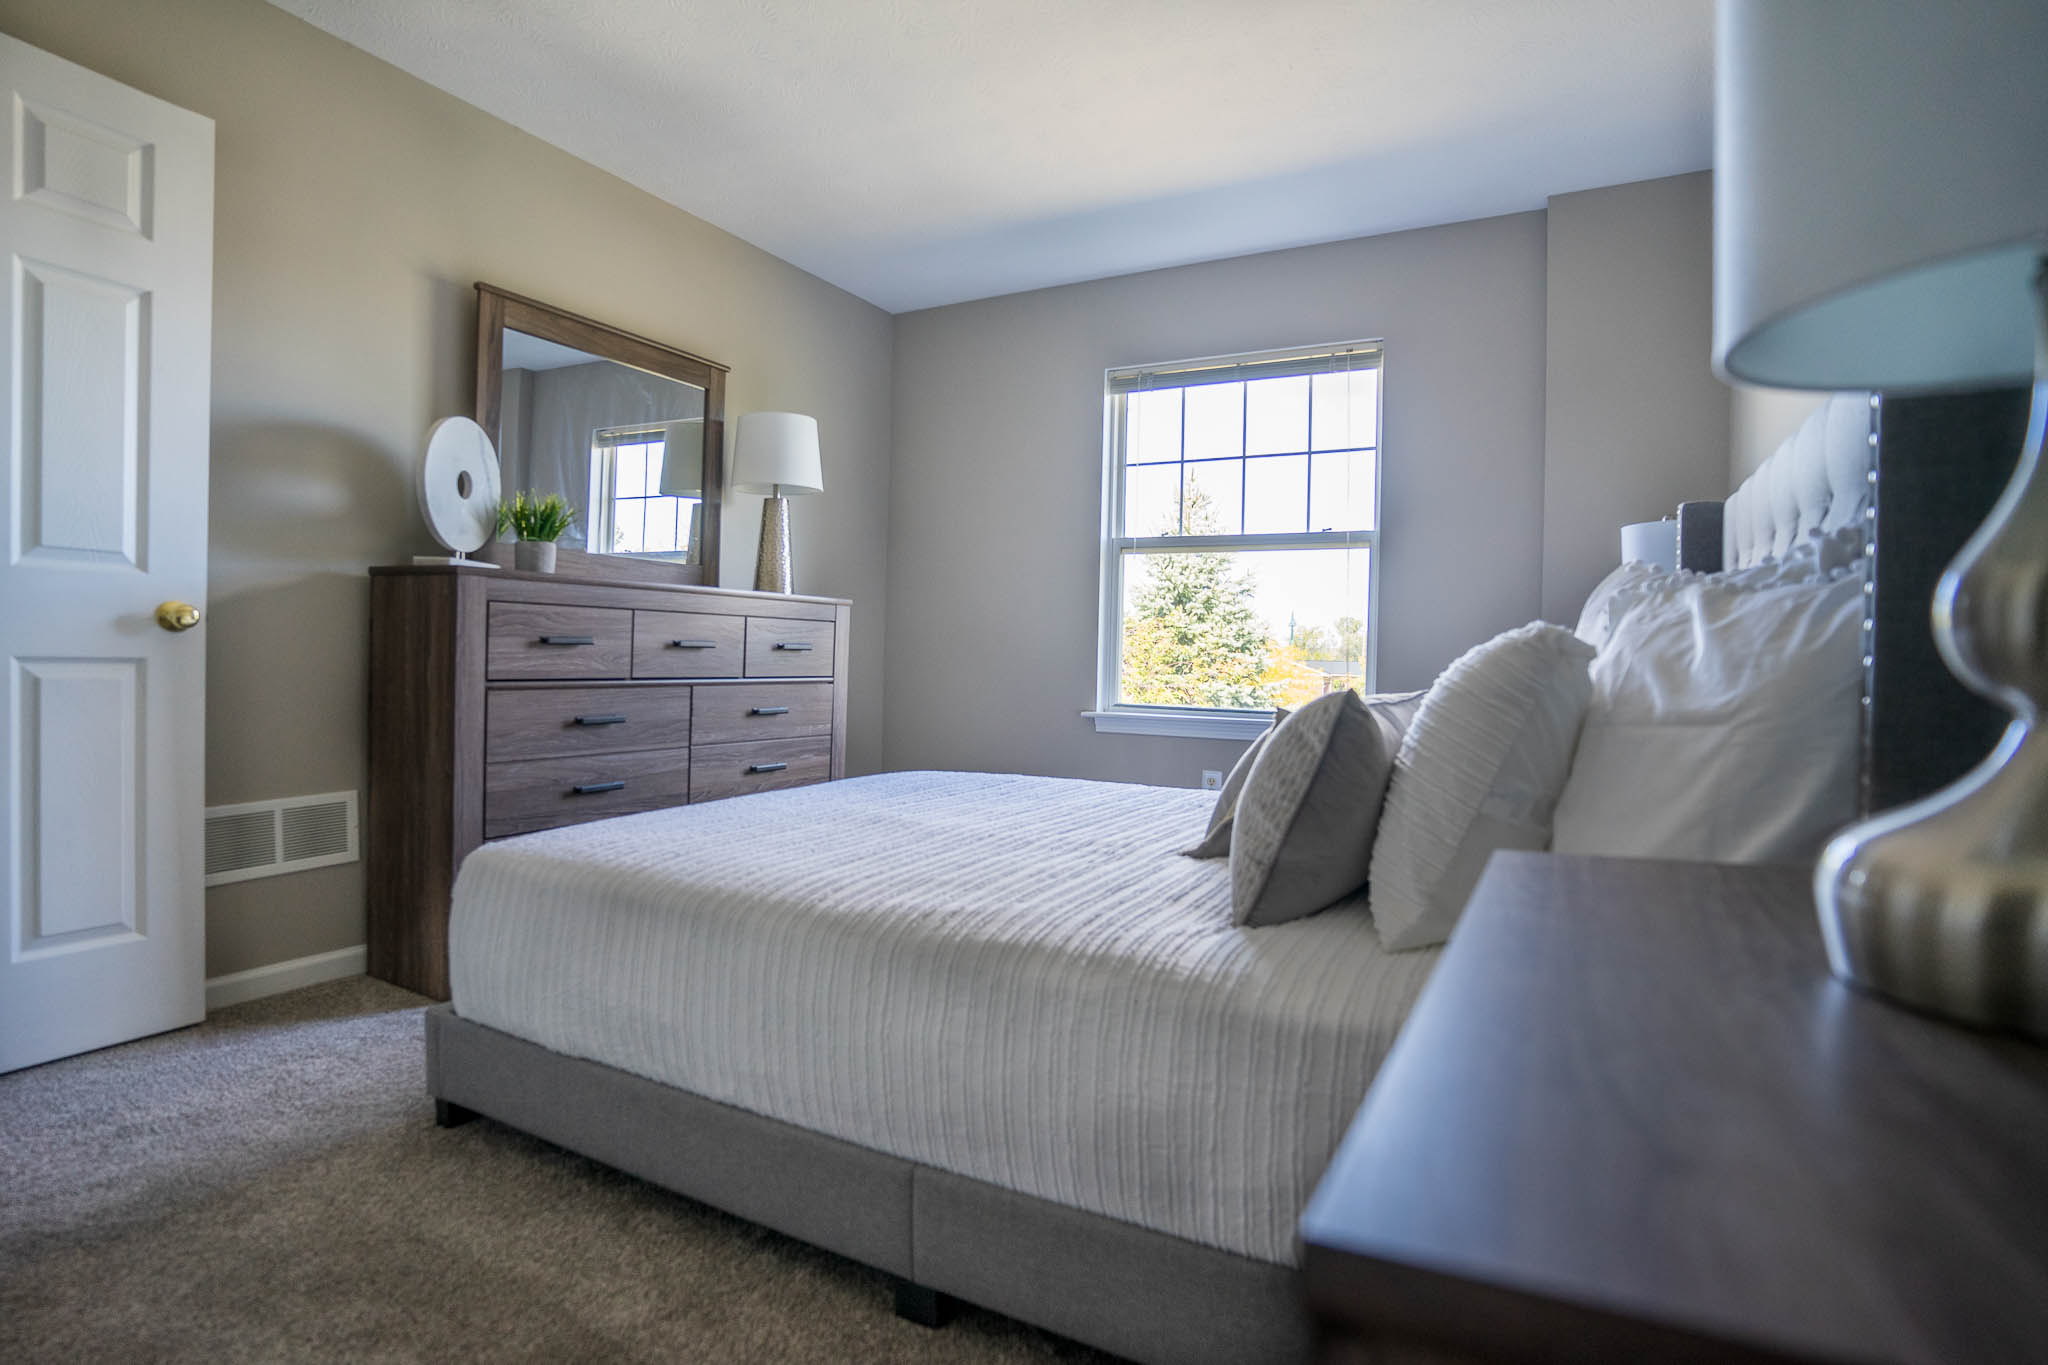 Master Bedroom at Webster Woods Townhouse Apartments in Webster, New York